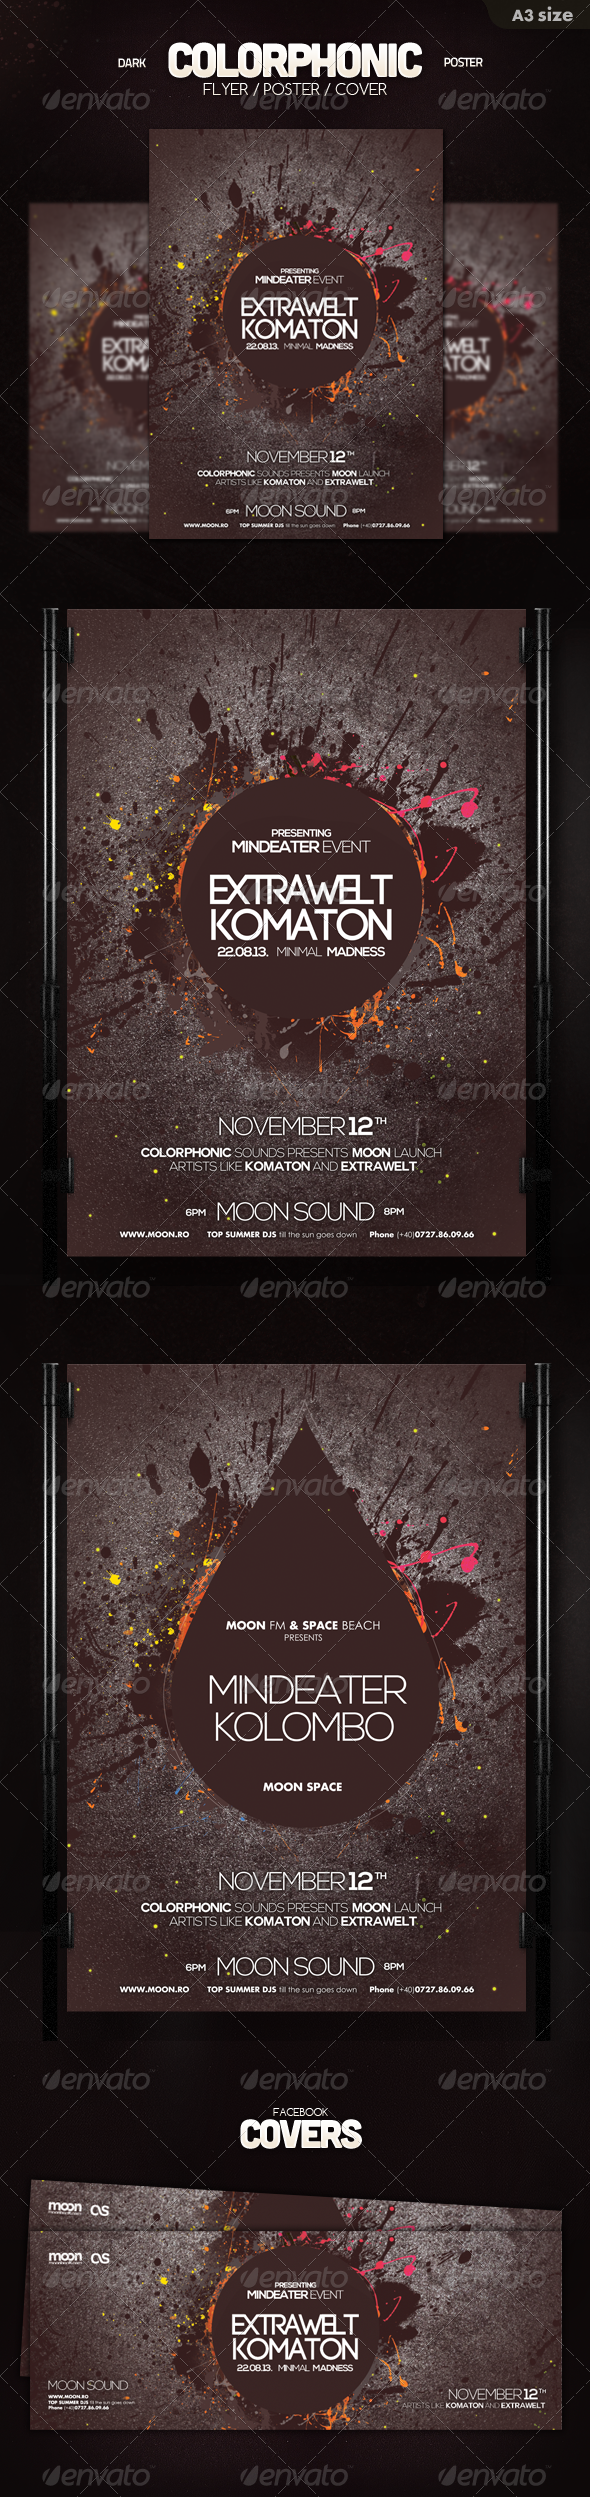 GraphicRiver Dark Colorphonic Poster 5832313